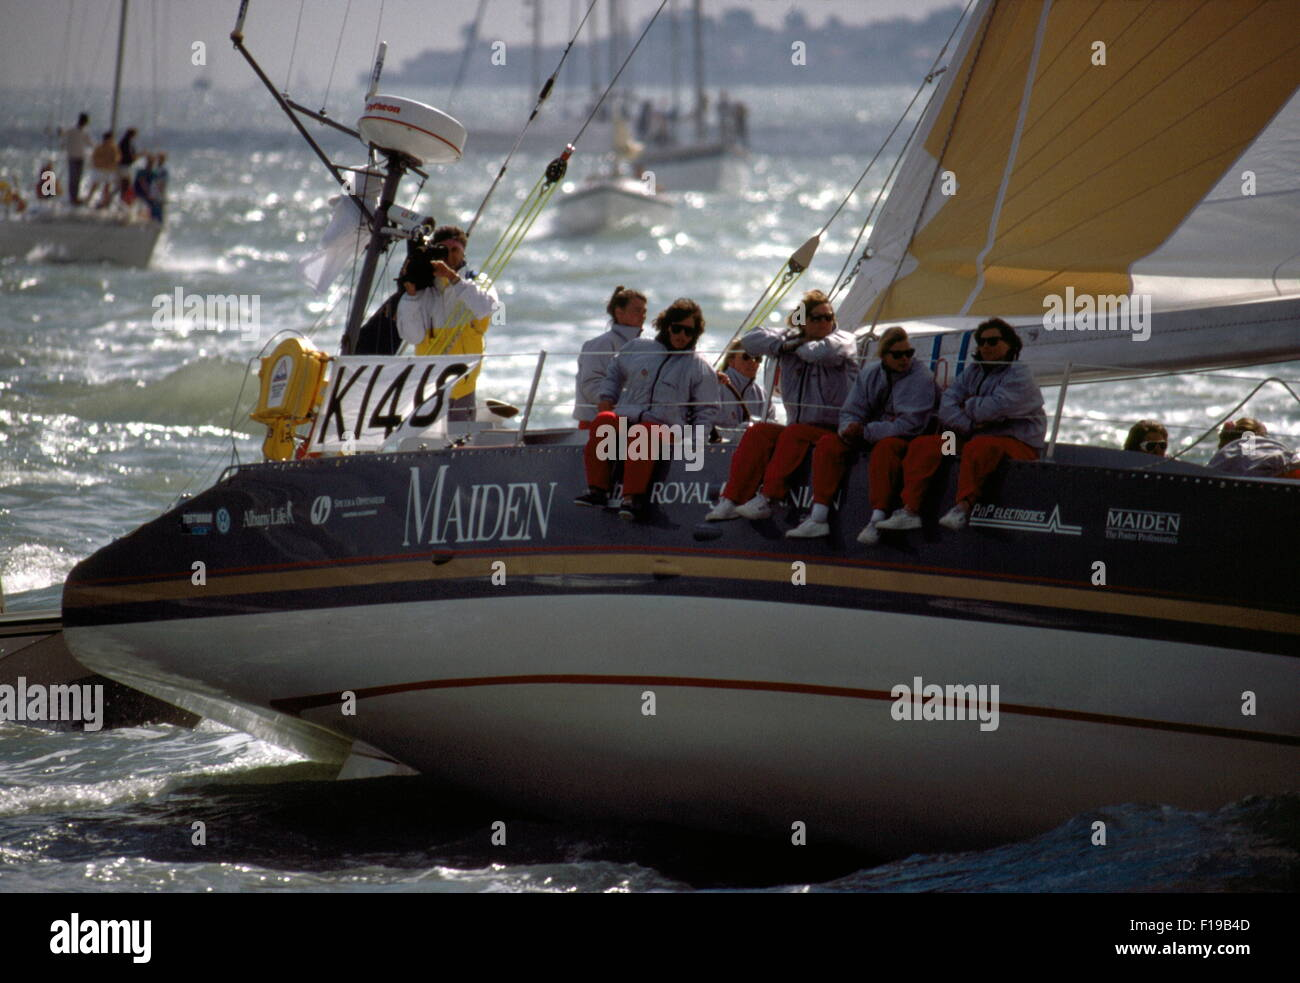 AJAXNETPHOTO. 1989. SOLENT, ENGLAND. - WHITBREAD RACE YACHT - MAIDEN (GBR) SKIPPERED BY TRACY EDWARDS IS A 58FT - Stock Image